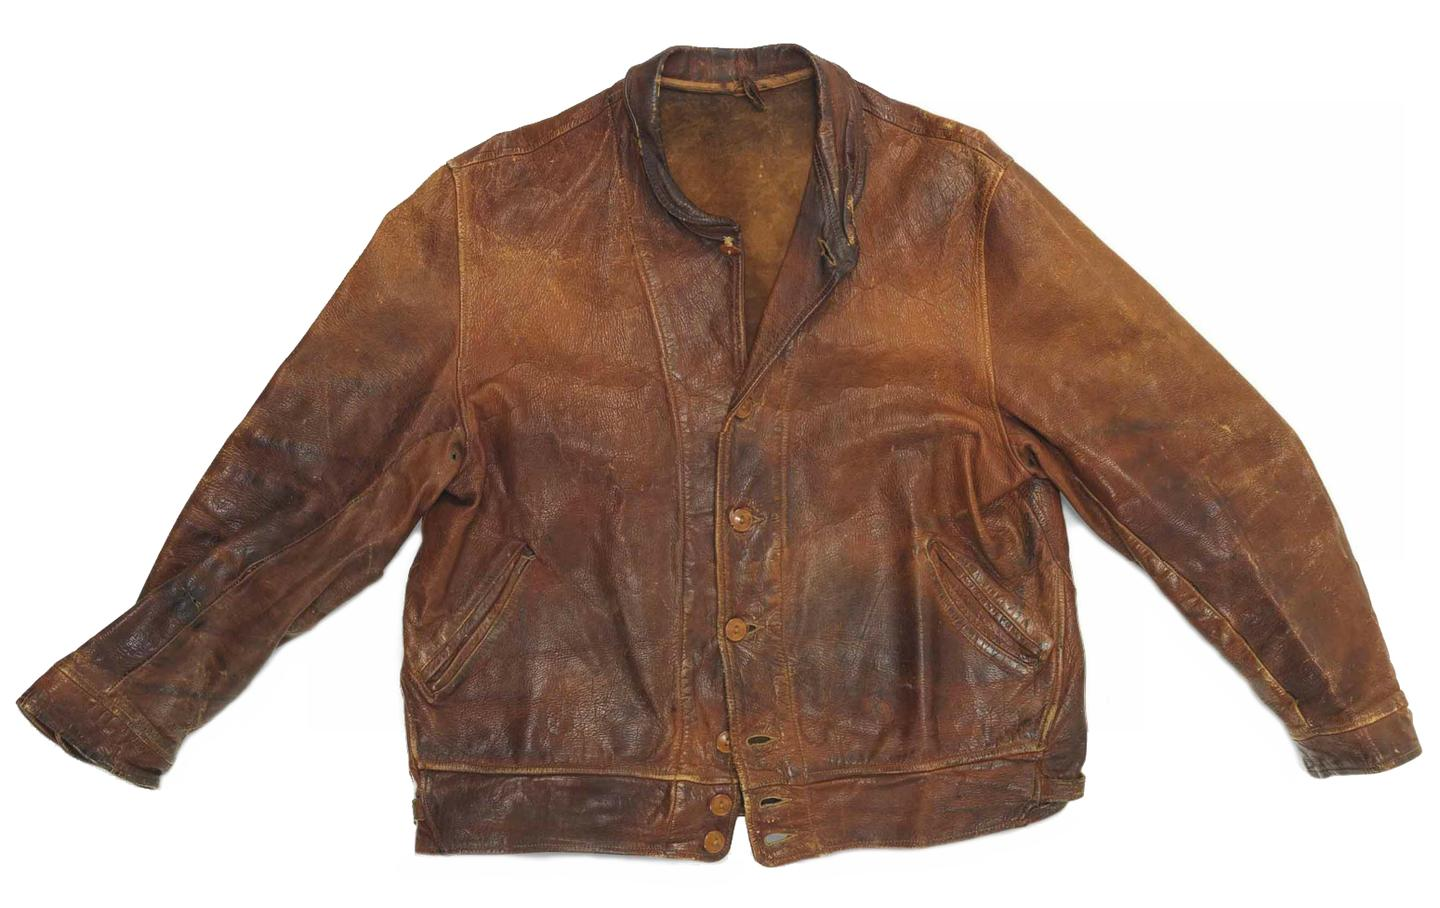 Einstein's Levis Strauss leather jacket doubled it's auction estimate of £40,000 to £60,000, selling for USD$145,974 at Christie's in July 2016.